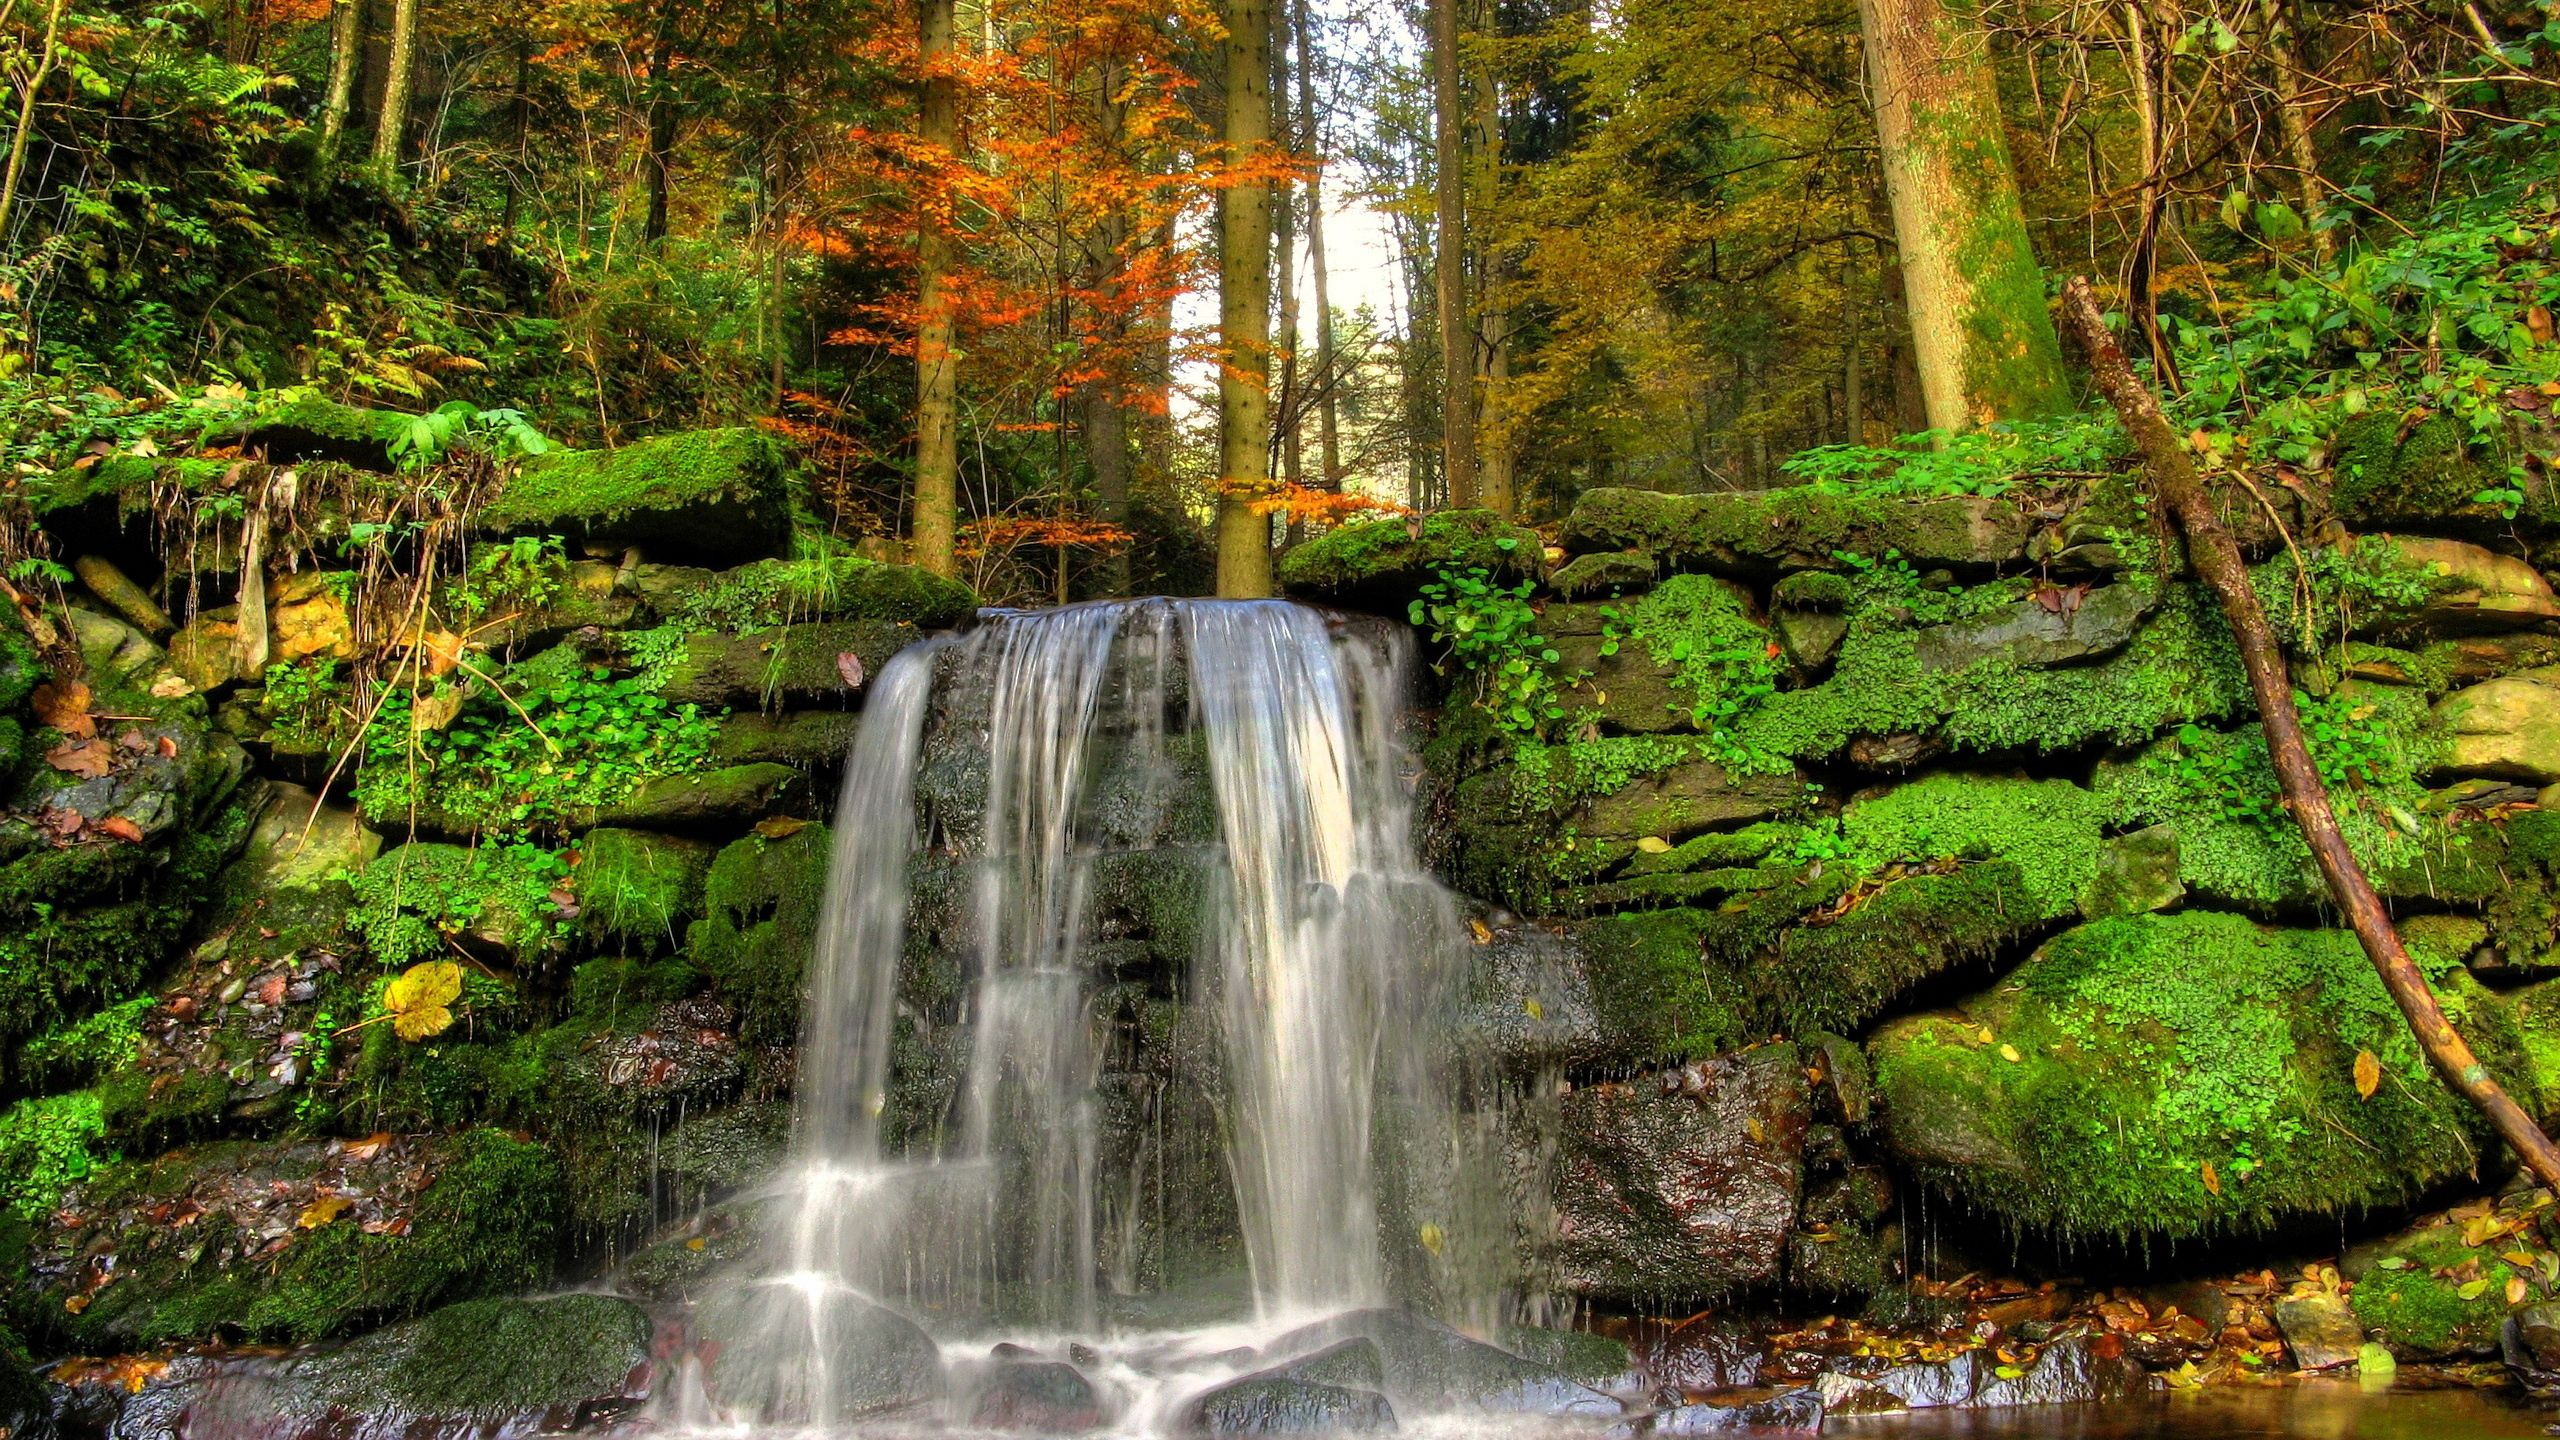 140550 download wallpaper Nature, Waterfall, Moss, Jet, Vegetation, Stones screensavers and pictures for free